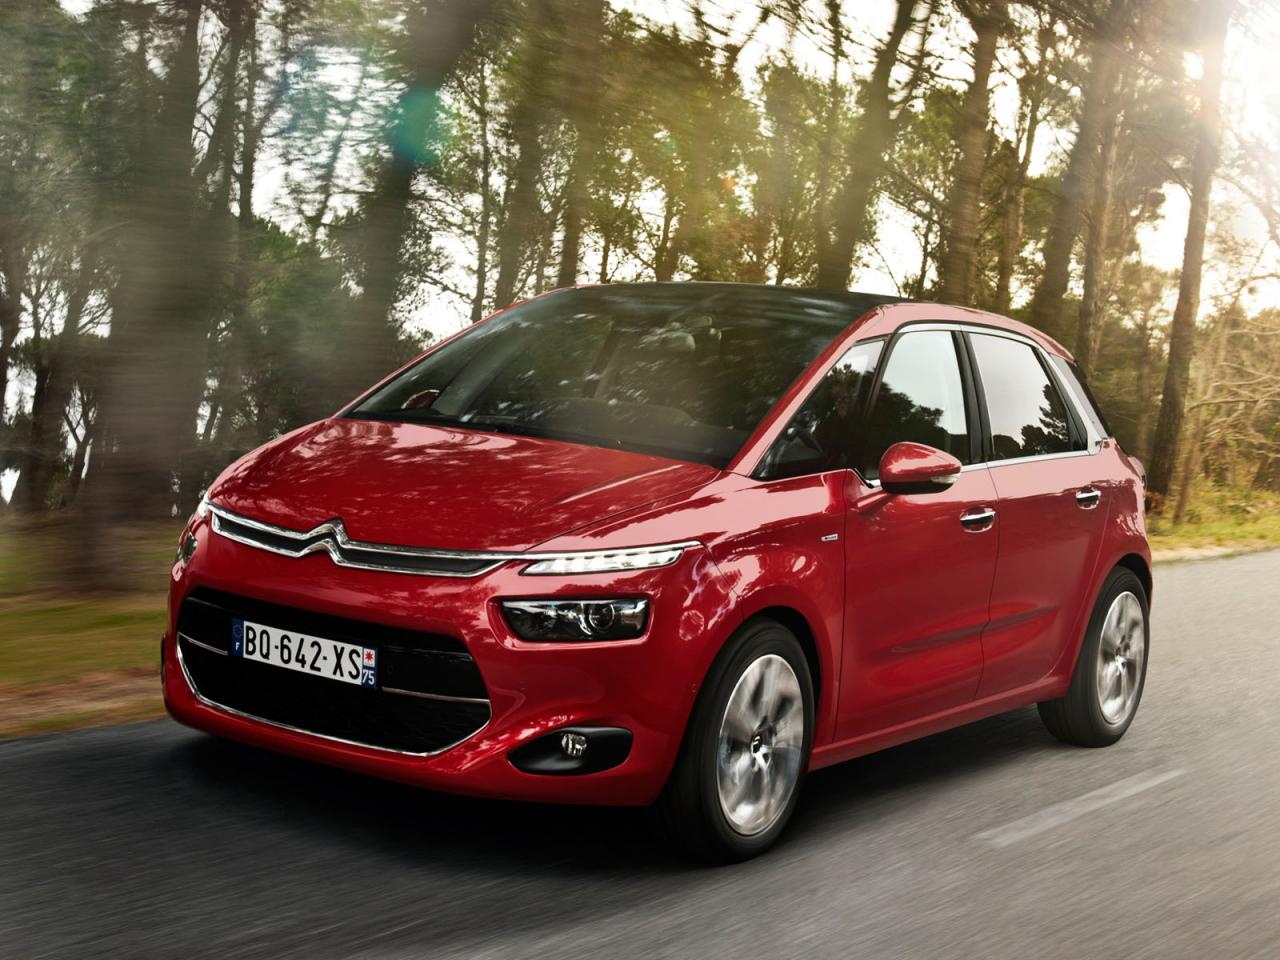 All-new Citroen C4 Picasso surfaces prior official debut